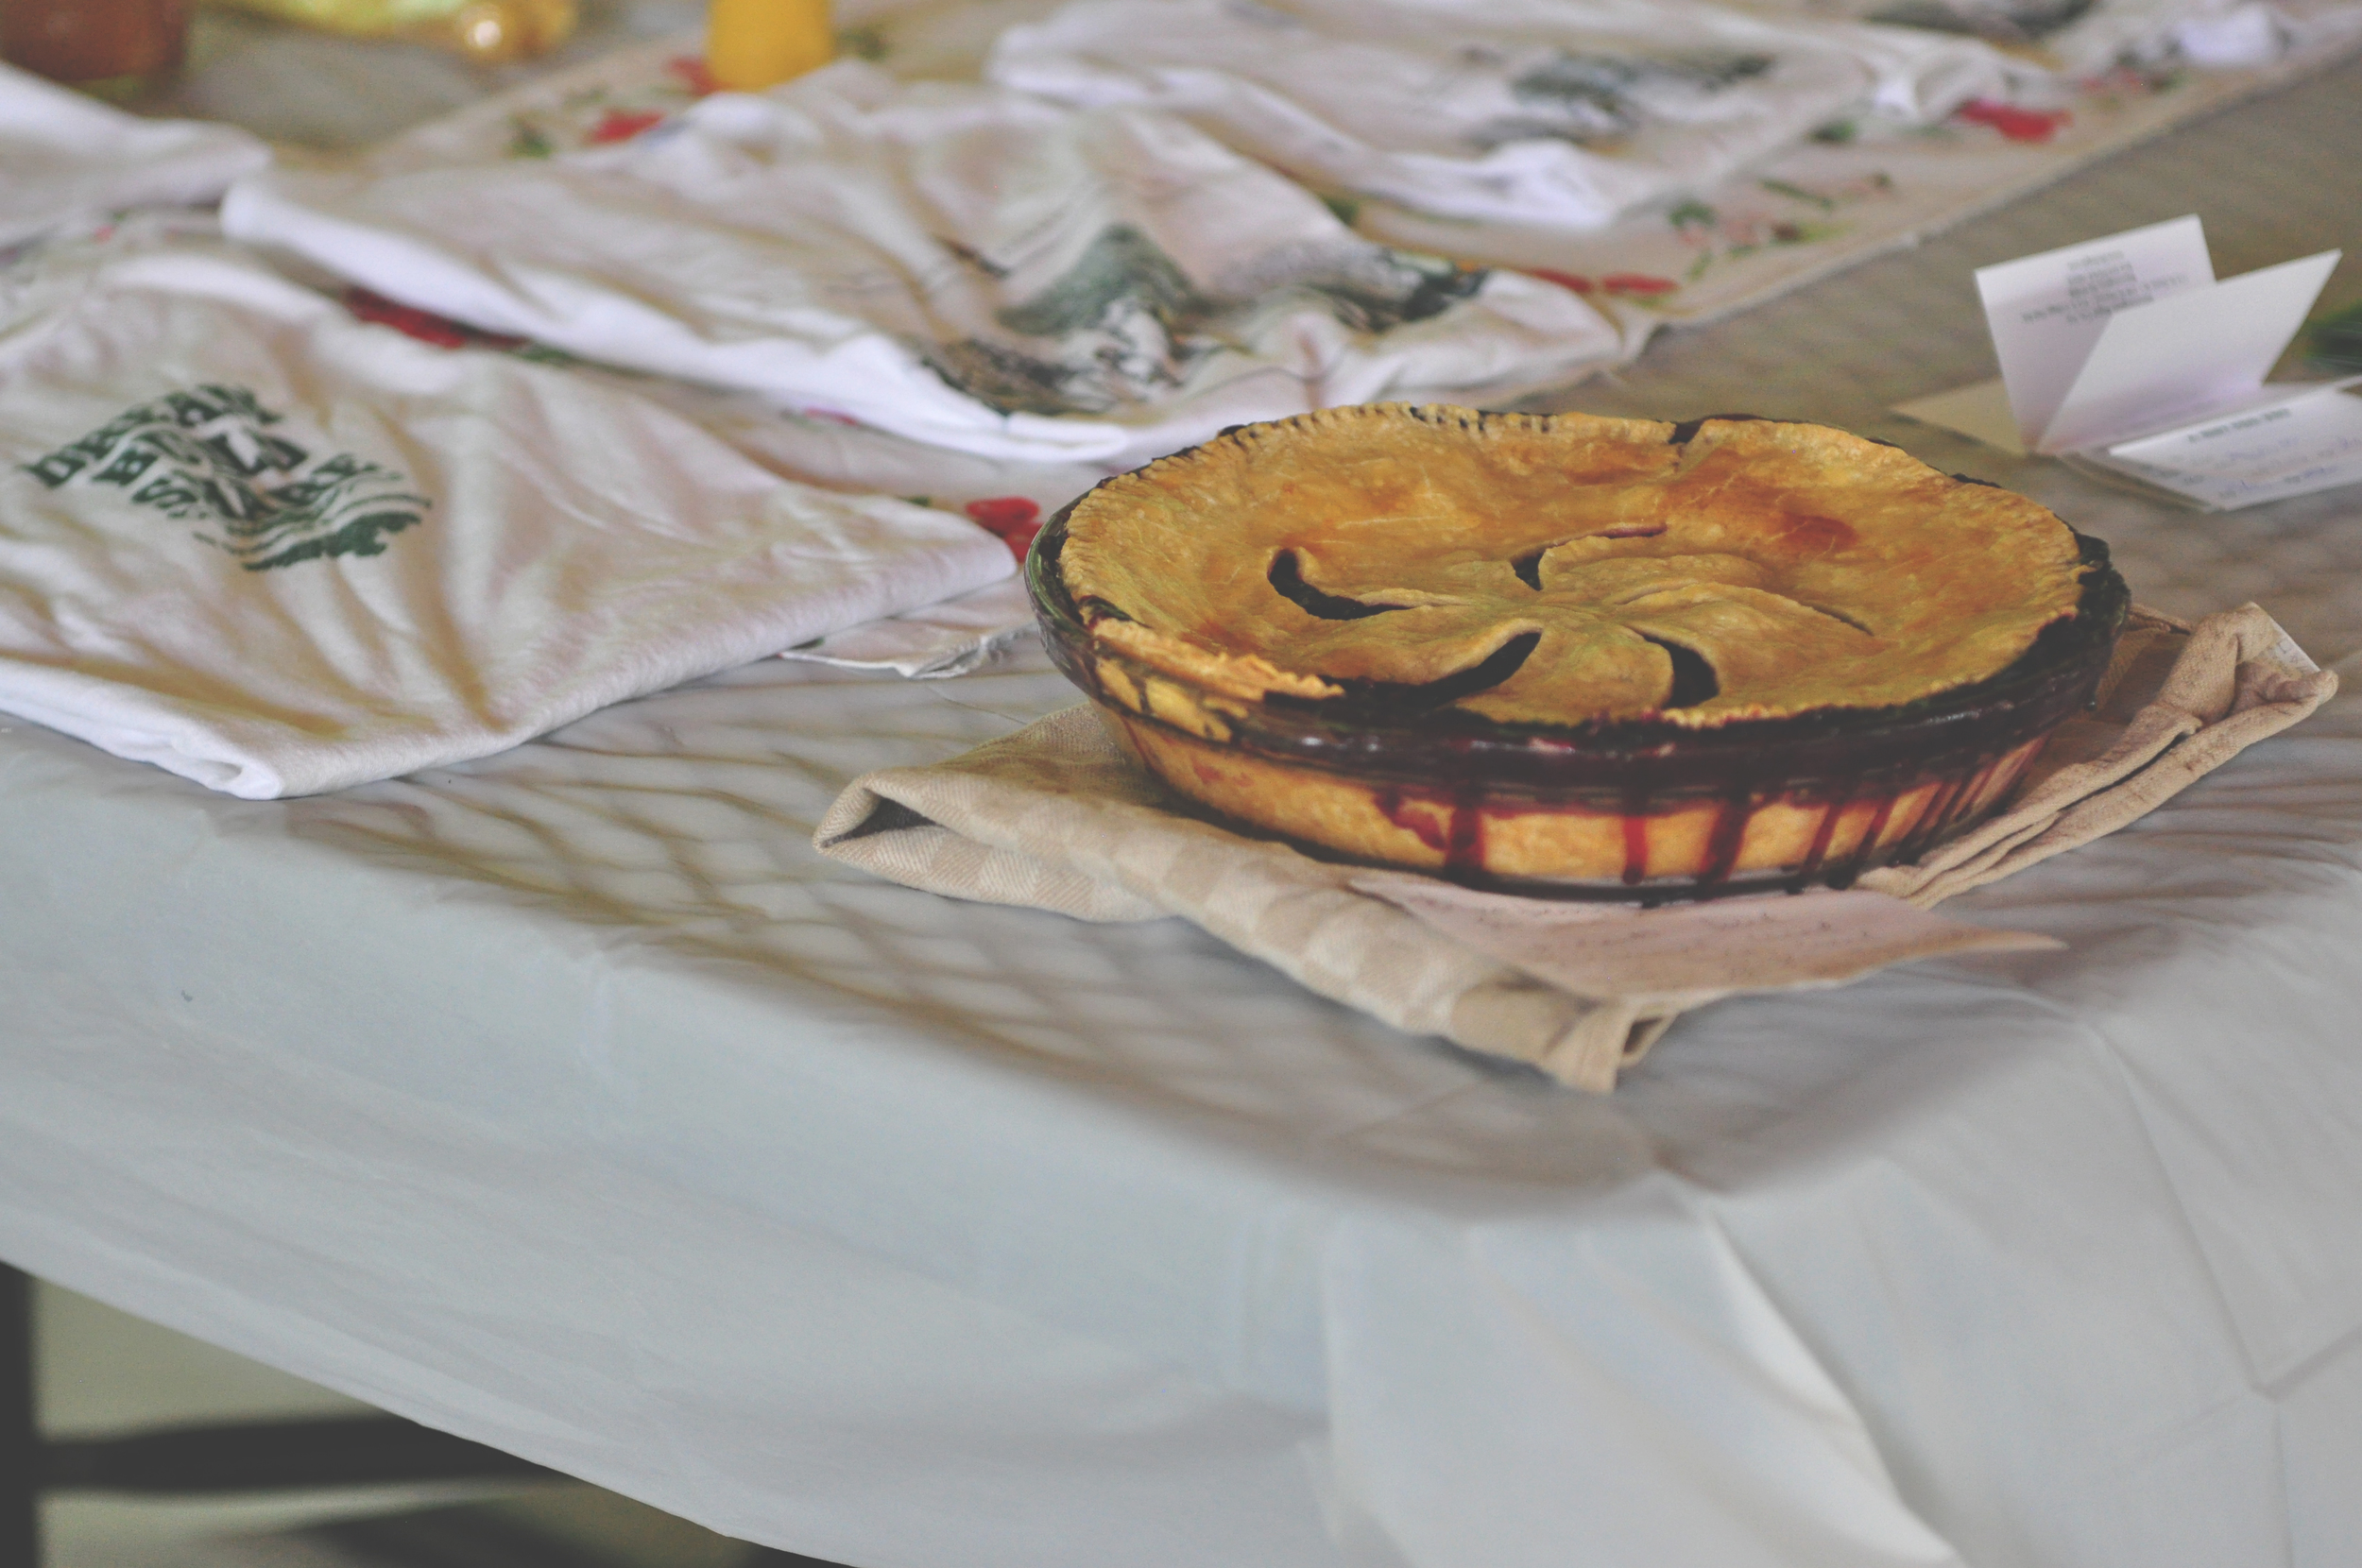 A homemade blueberry-peach pie was on hand for the winner of the haiku contest.